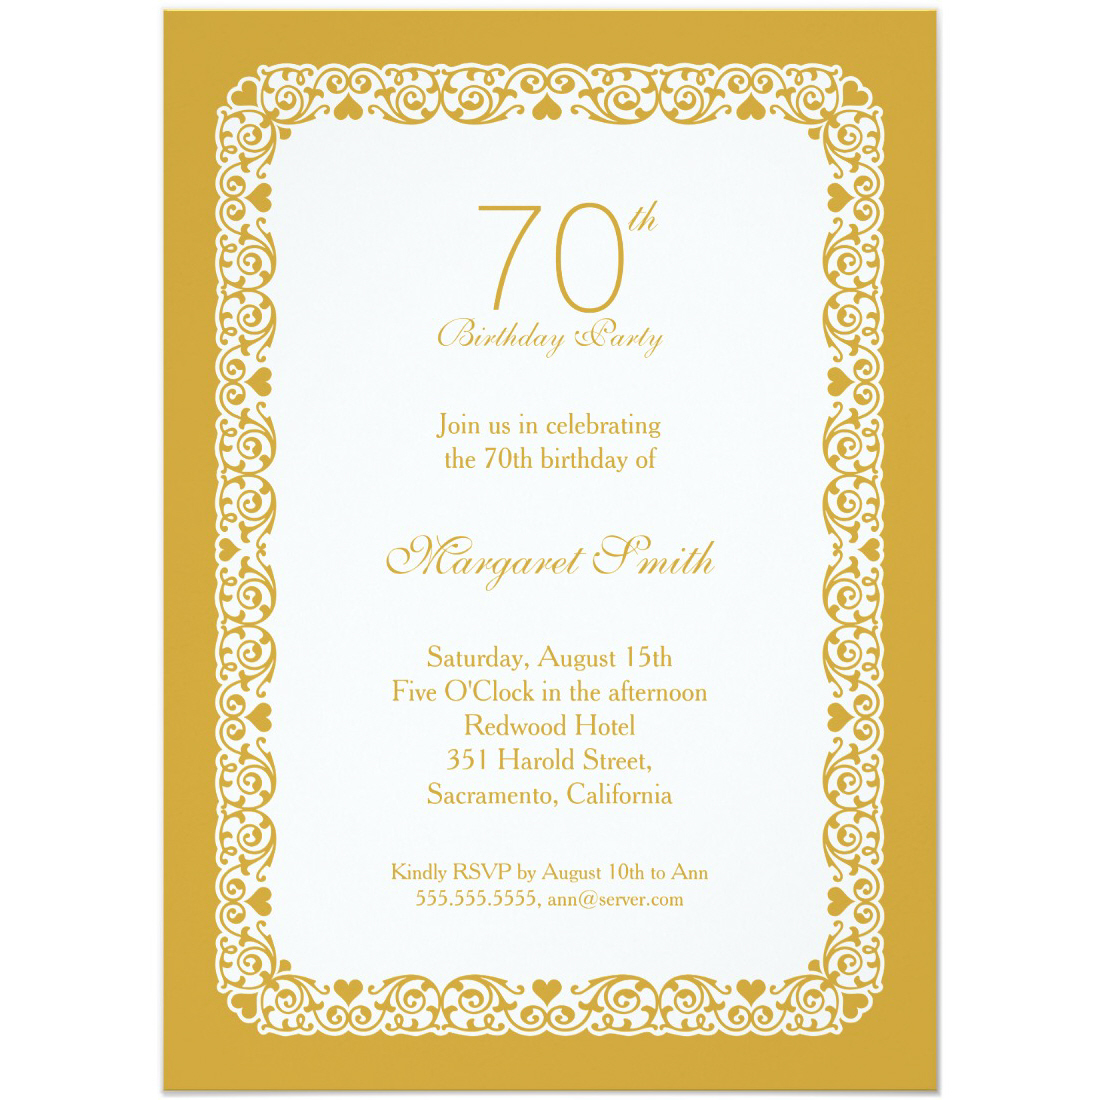 Elegant personalized 70th birthday party invitations elegant personalized 70th birthday party invitations choose your own colors filmwisefo